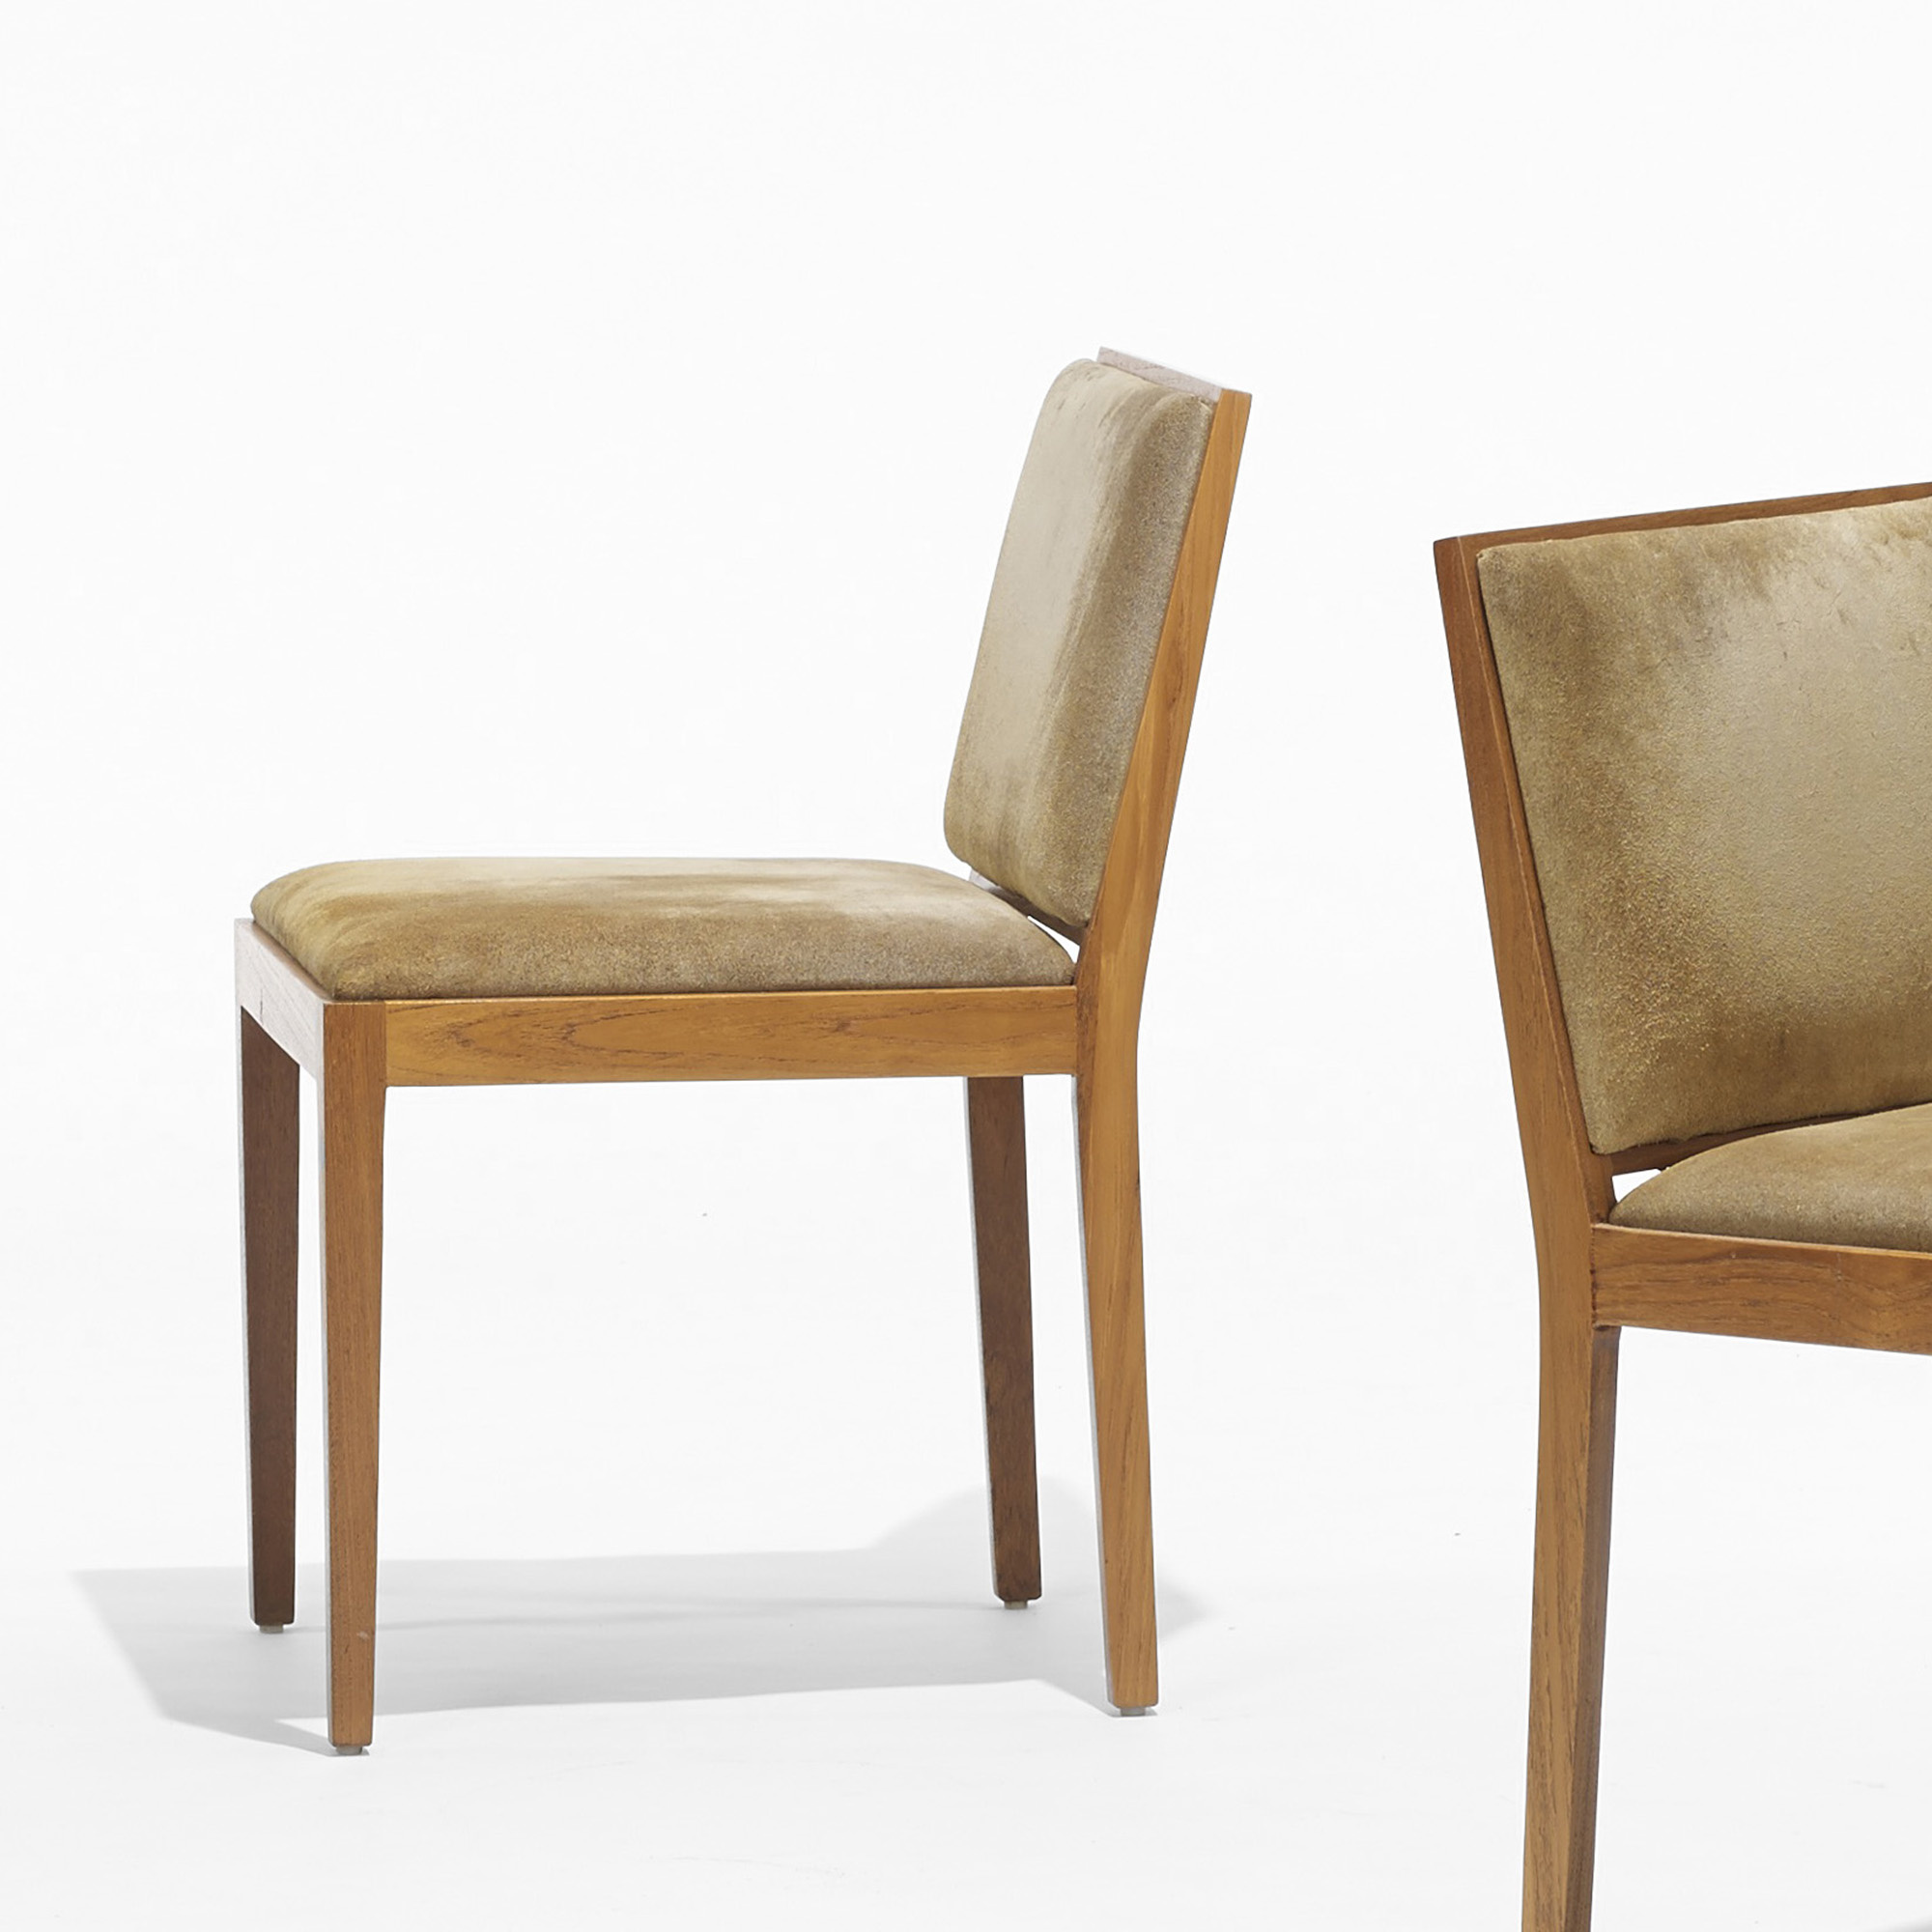 Dining Chairs Chicago: 528: LUDWIG MIES VAN DER ROHE, Set Of Eight Dining Chairs